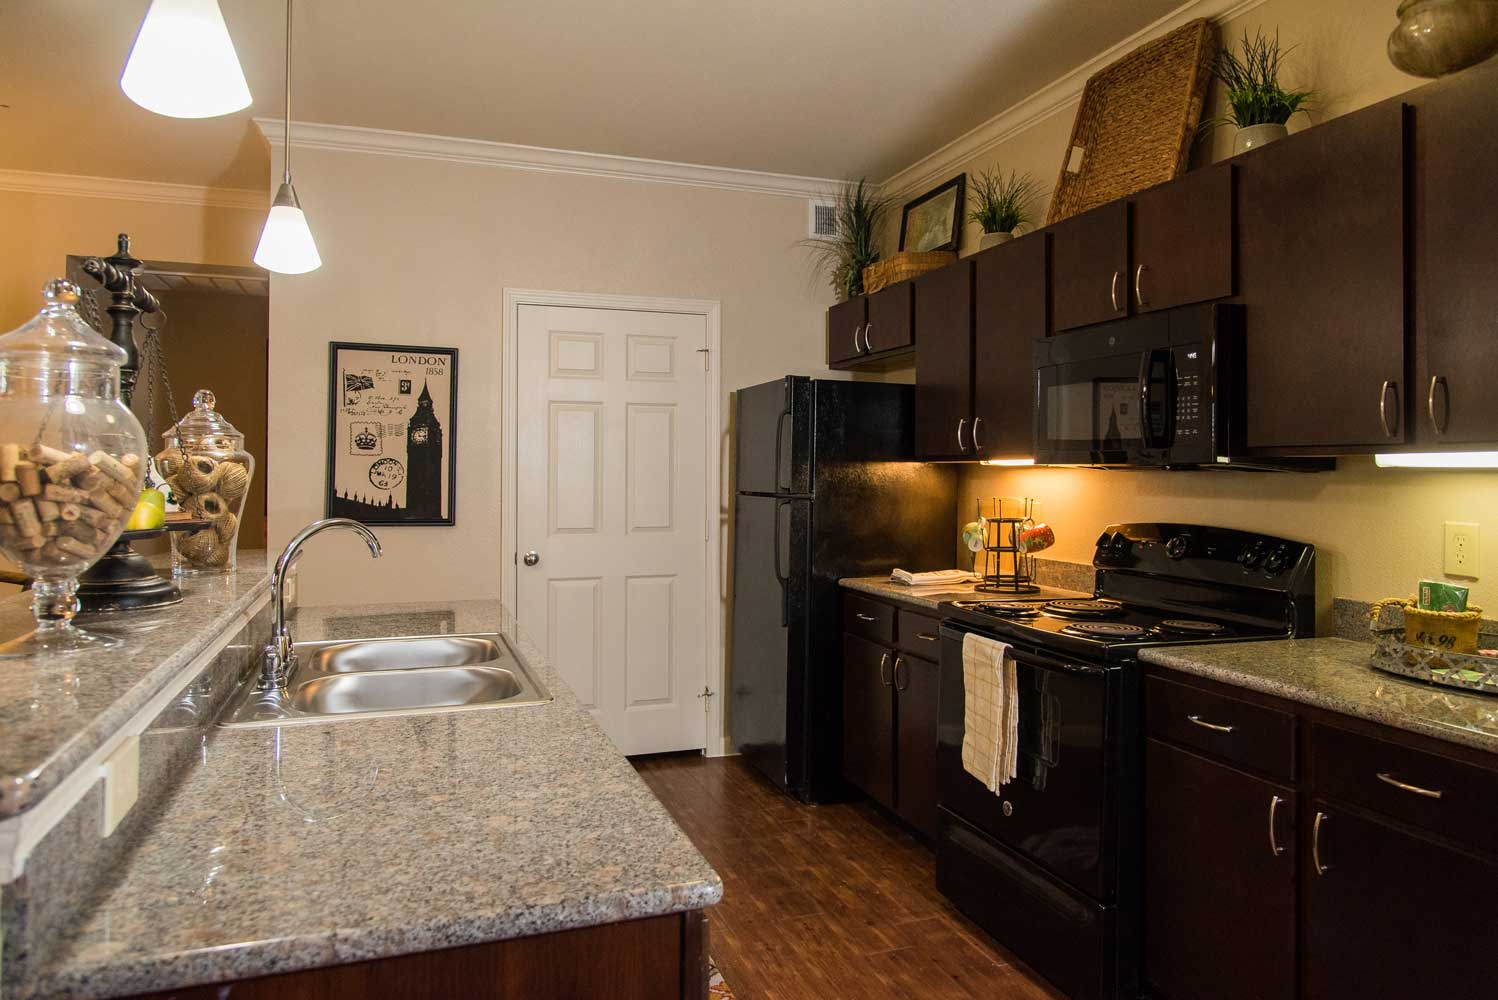 Fully Equipped Kitchen at the Oxford at Country Club Apartments in Baytown, TX